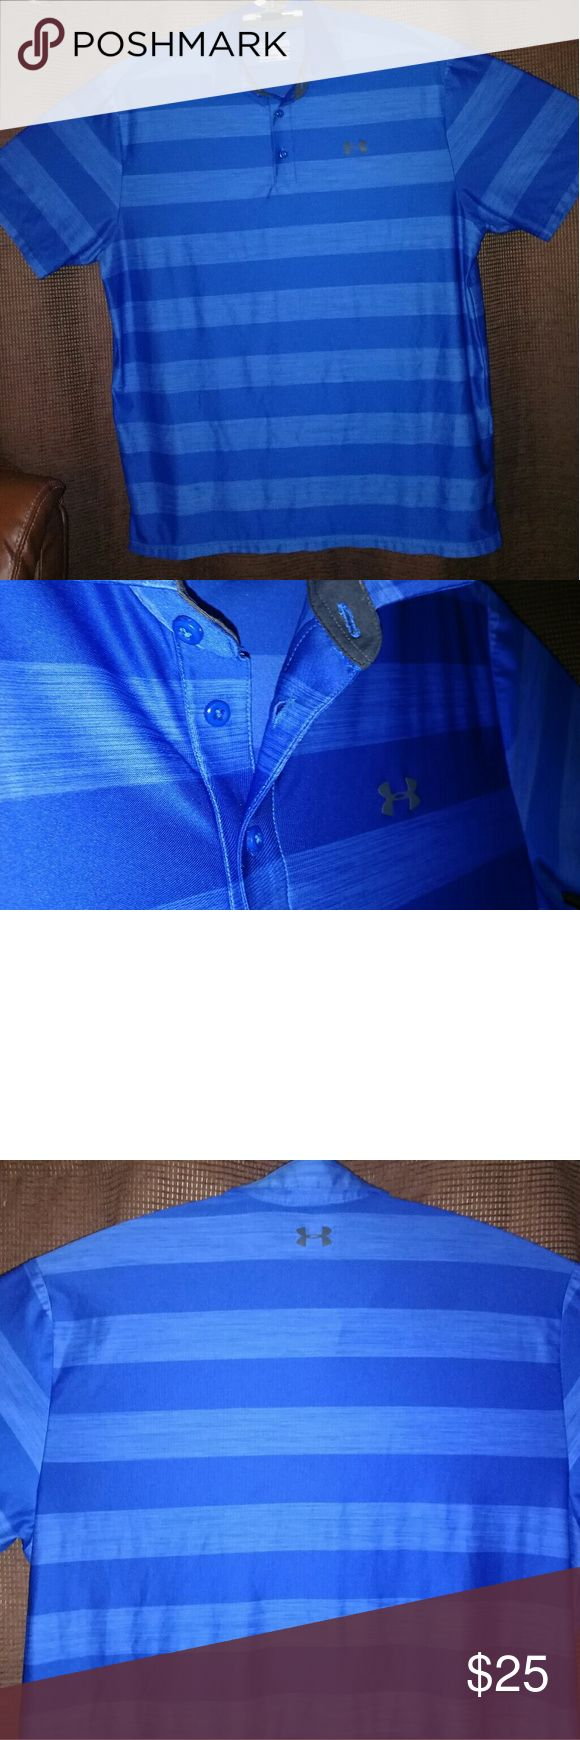 XL-Under Armour Polo Coolswitch Loose Performance Almost new and unused. No stains or rips. Great for sunny day. Keeps cool. Blocks IR and heat rays. 30+ UPF. Whicks sweat and dries fast. 6.5oz.  All offers will be considered. Please post any questions or comments.Will reply asap. Under Armour Shirts Polos